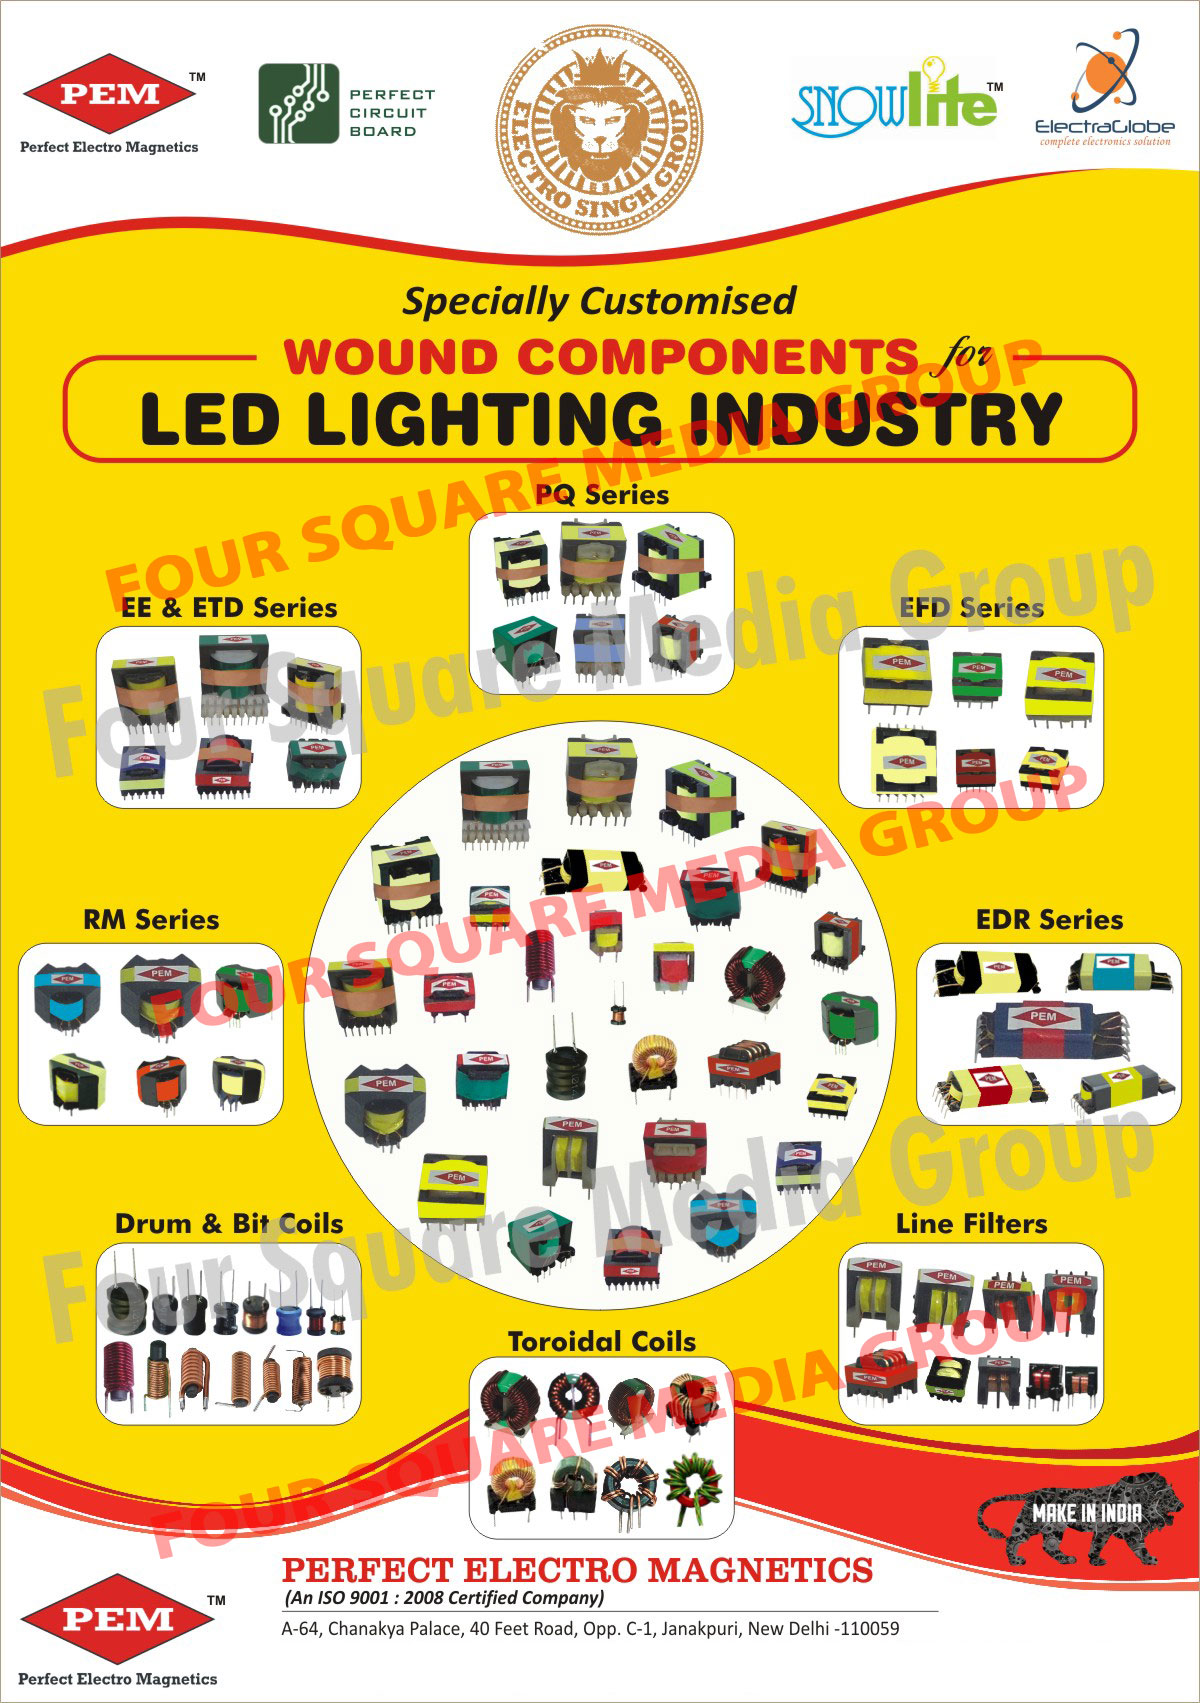 Led Light Industry Wound Components, Drum Coils, Bit Coils, Toroidal Coils Line Filters